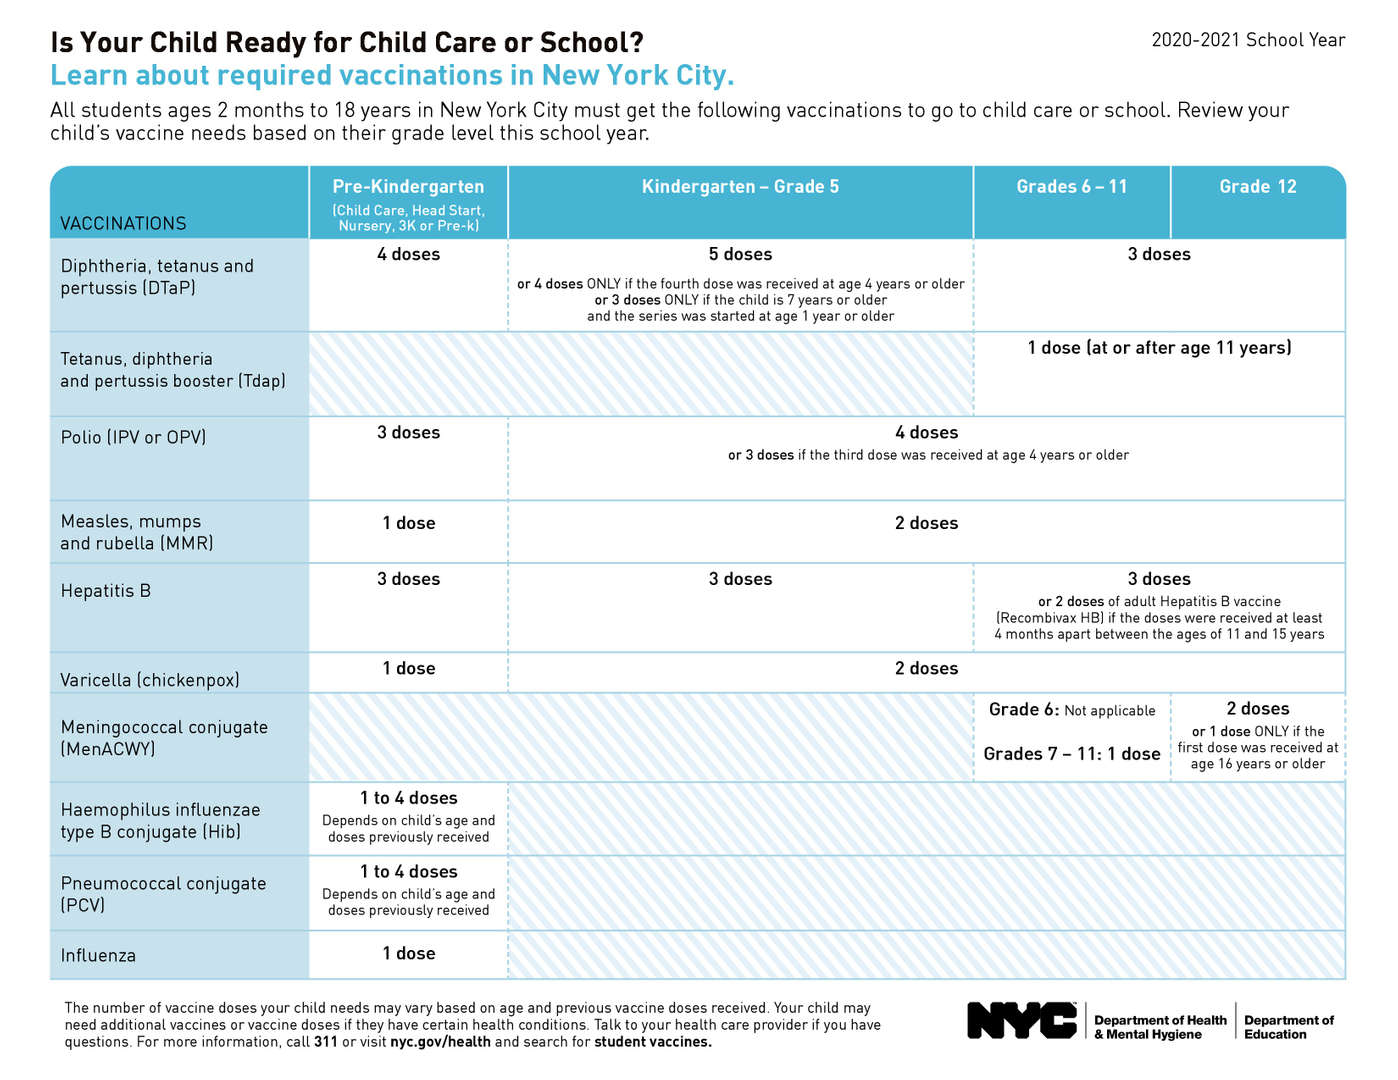 Vaccinations required for students in order to go to any NYC schools for the 2020-2021 school year